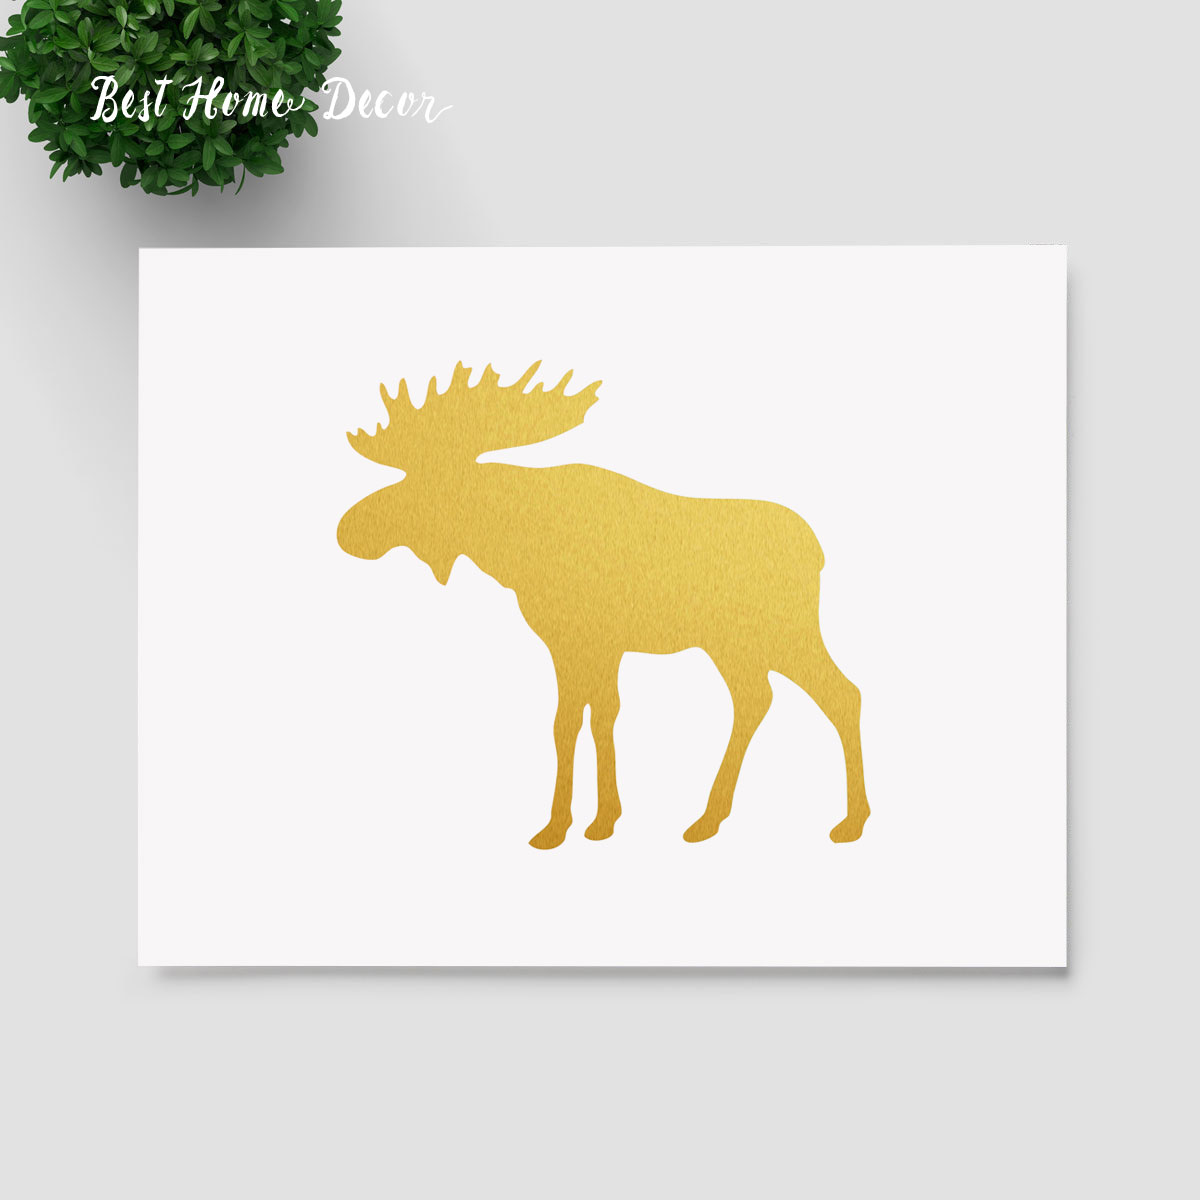 Inspiration 90+ Moose Wall Art Design Ideas Of Chocolate Moose ...